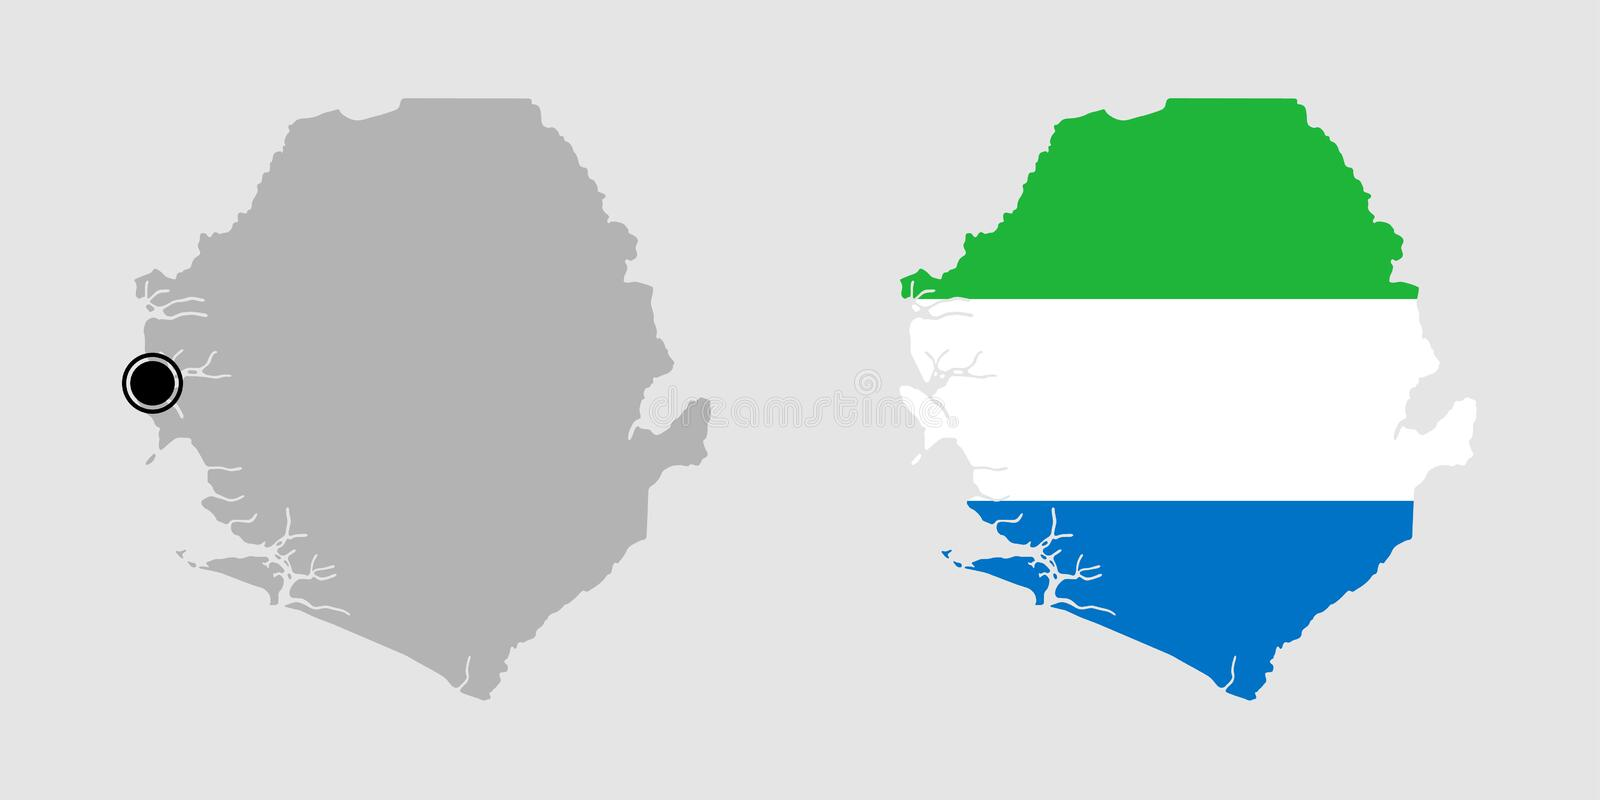 Contour of Sierra Leone royalty free stock images